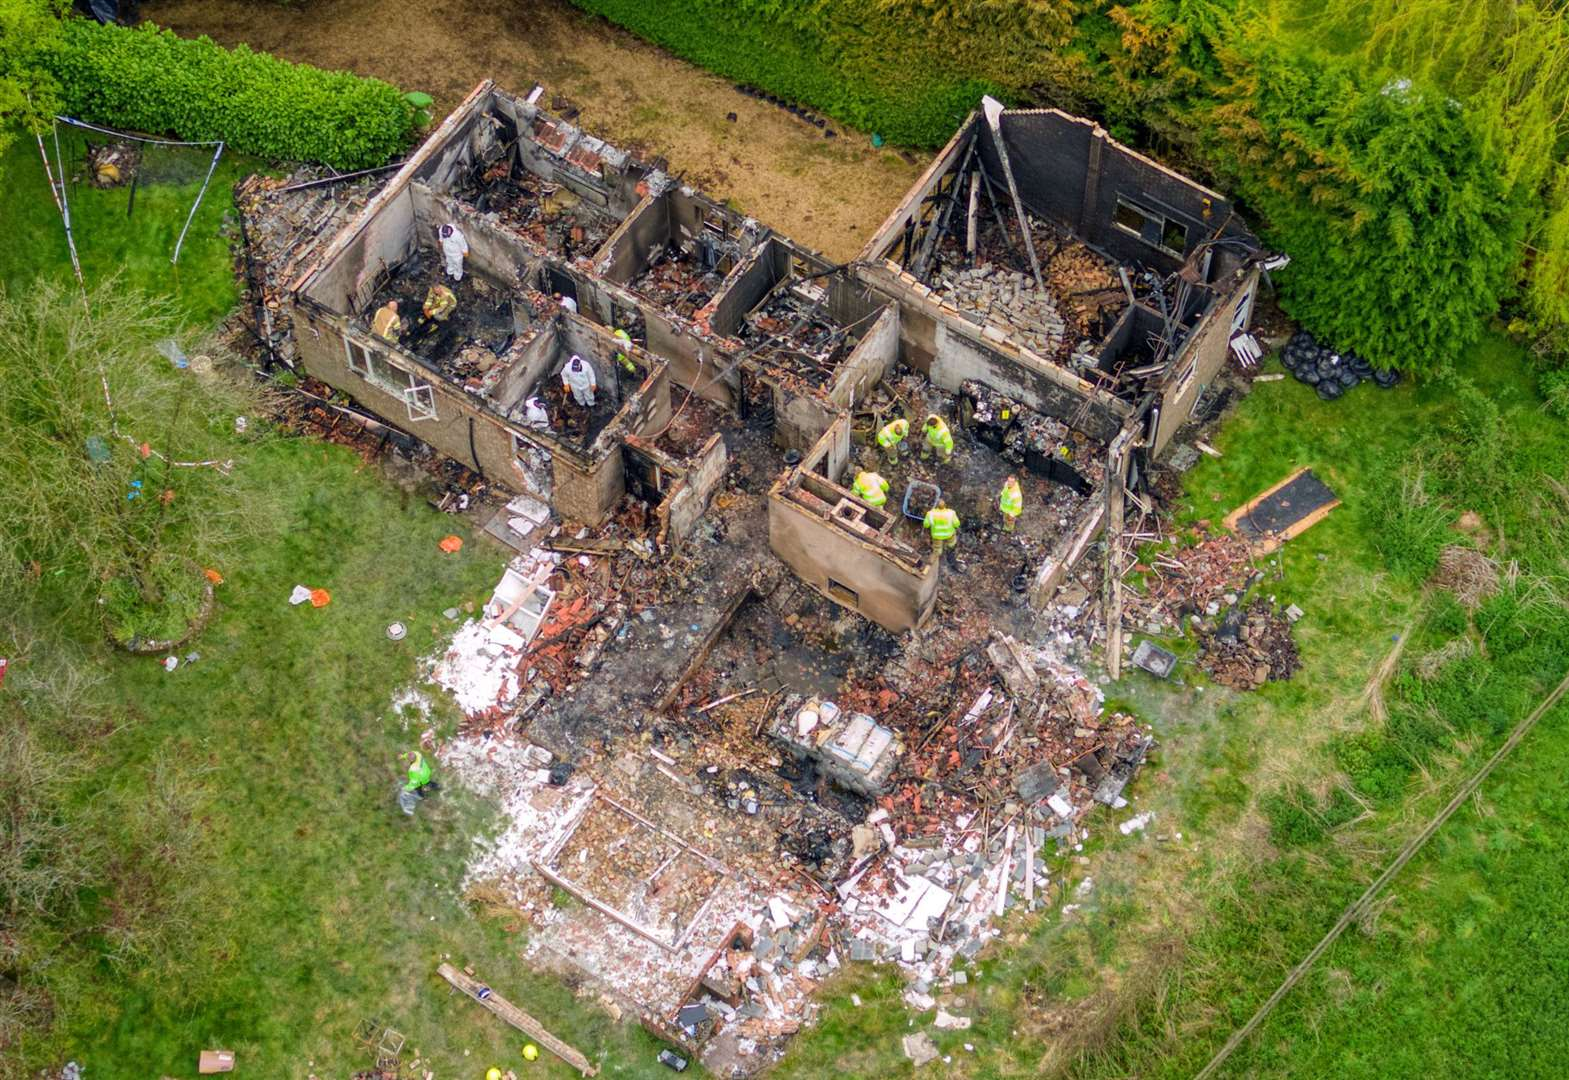 Formal identification yet to take place on Lidgate blast victims